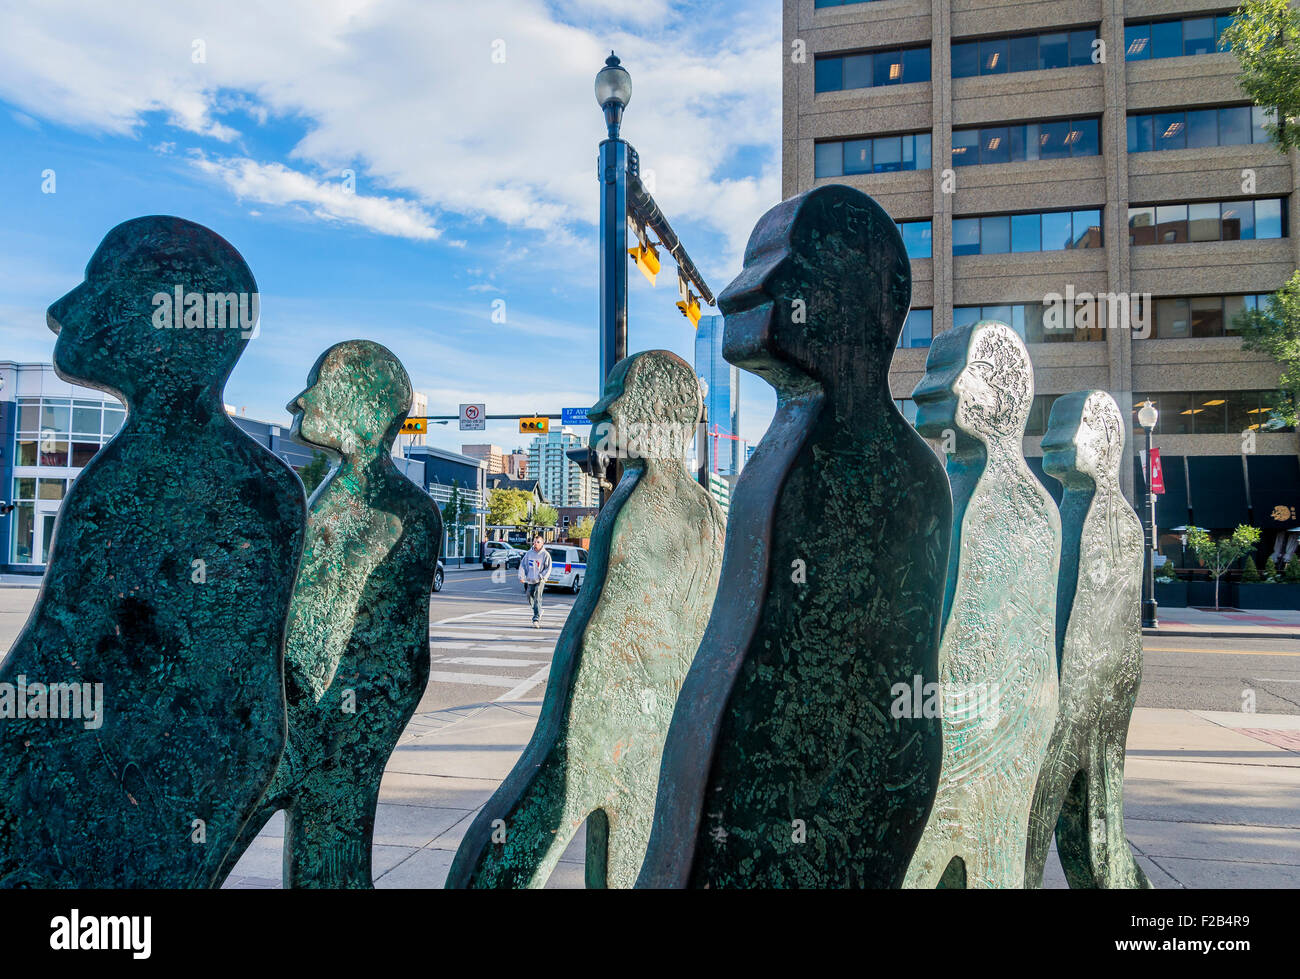 Starting Fourth sculpture by Garry Jones at 4th Street and 17th Avenue Calgary, Alberta, Canada - Stock Image